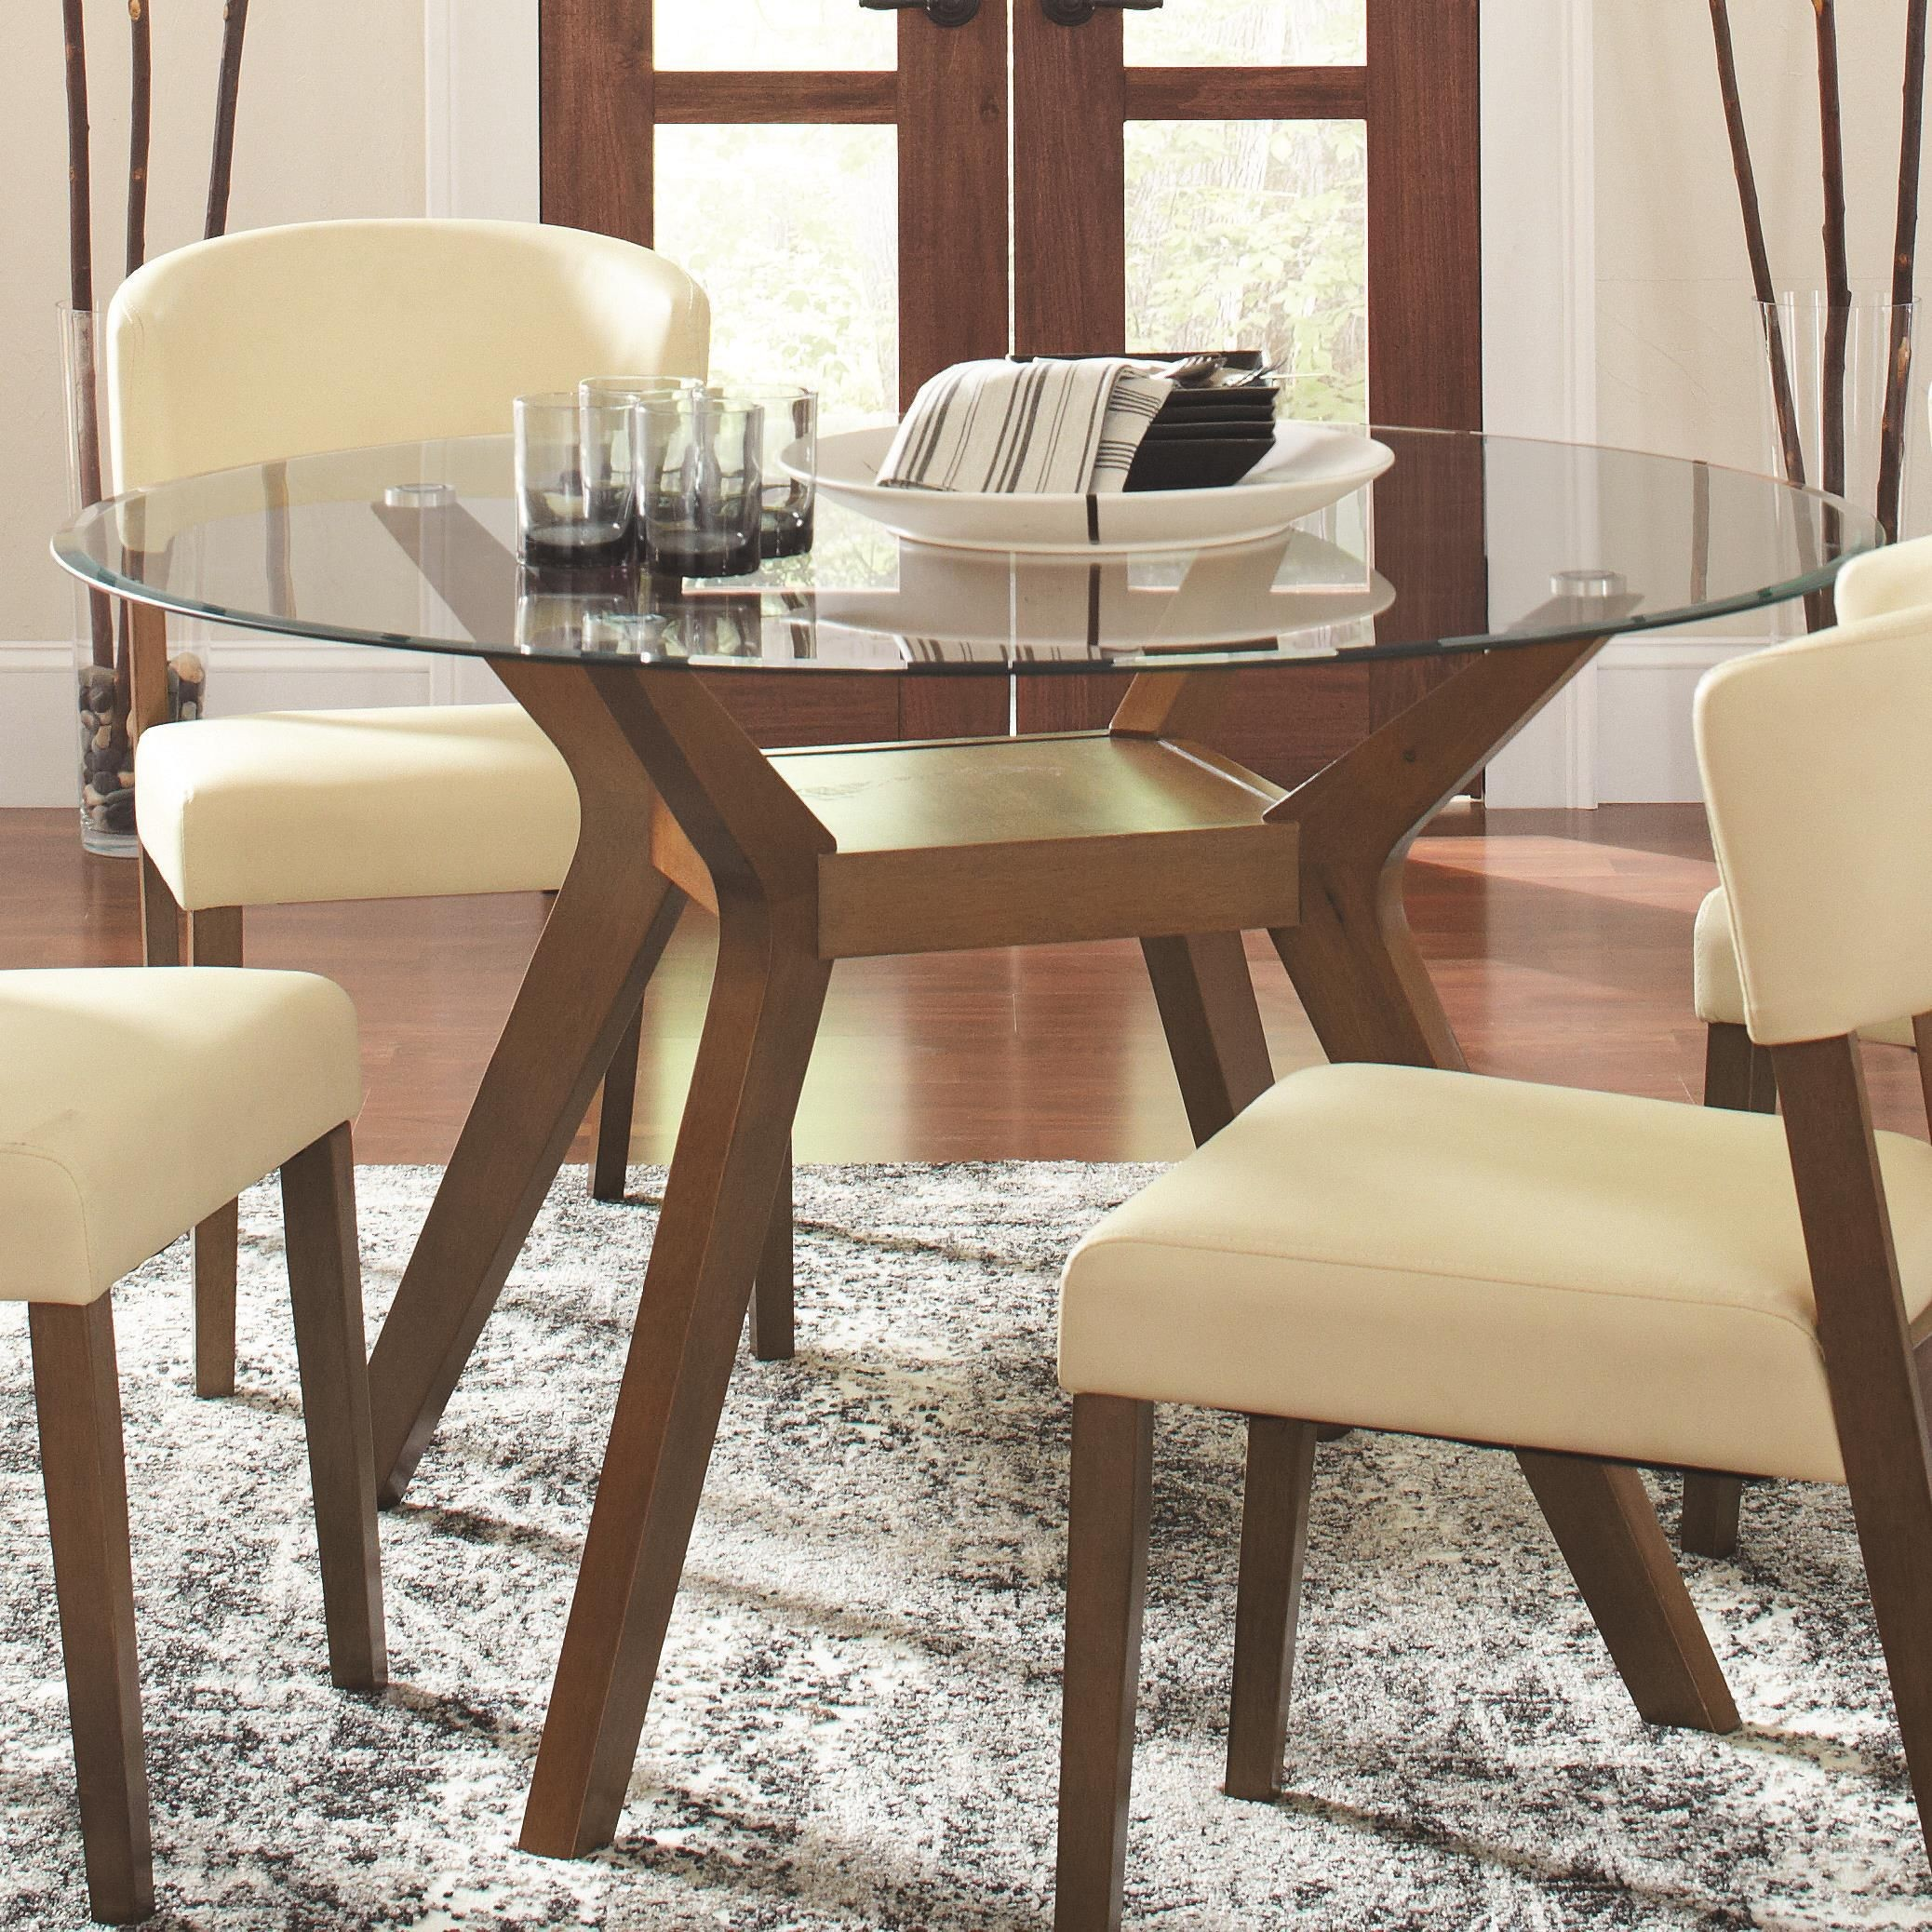 Round Glass Dining Table Paxton Round Glass Dining Table From Coaster 122180